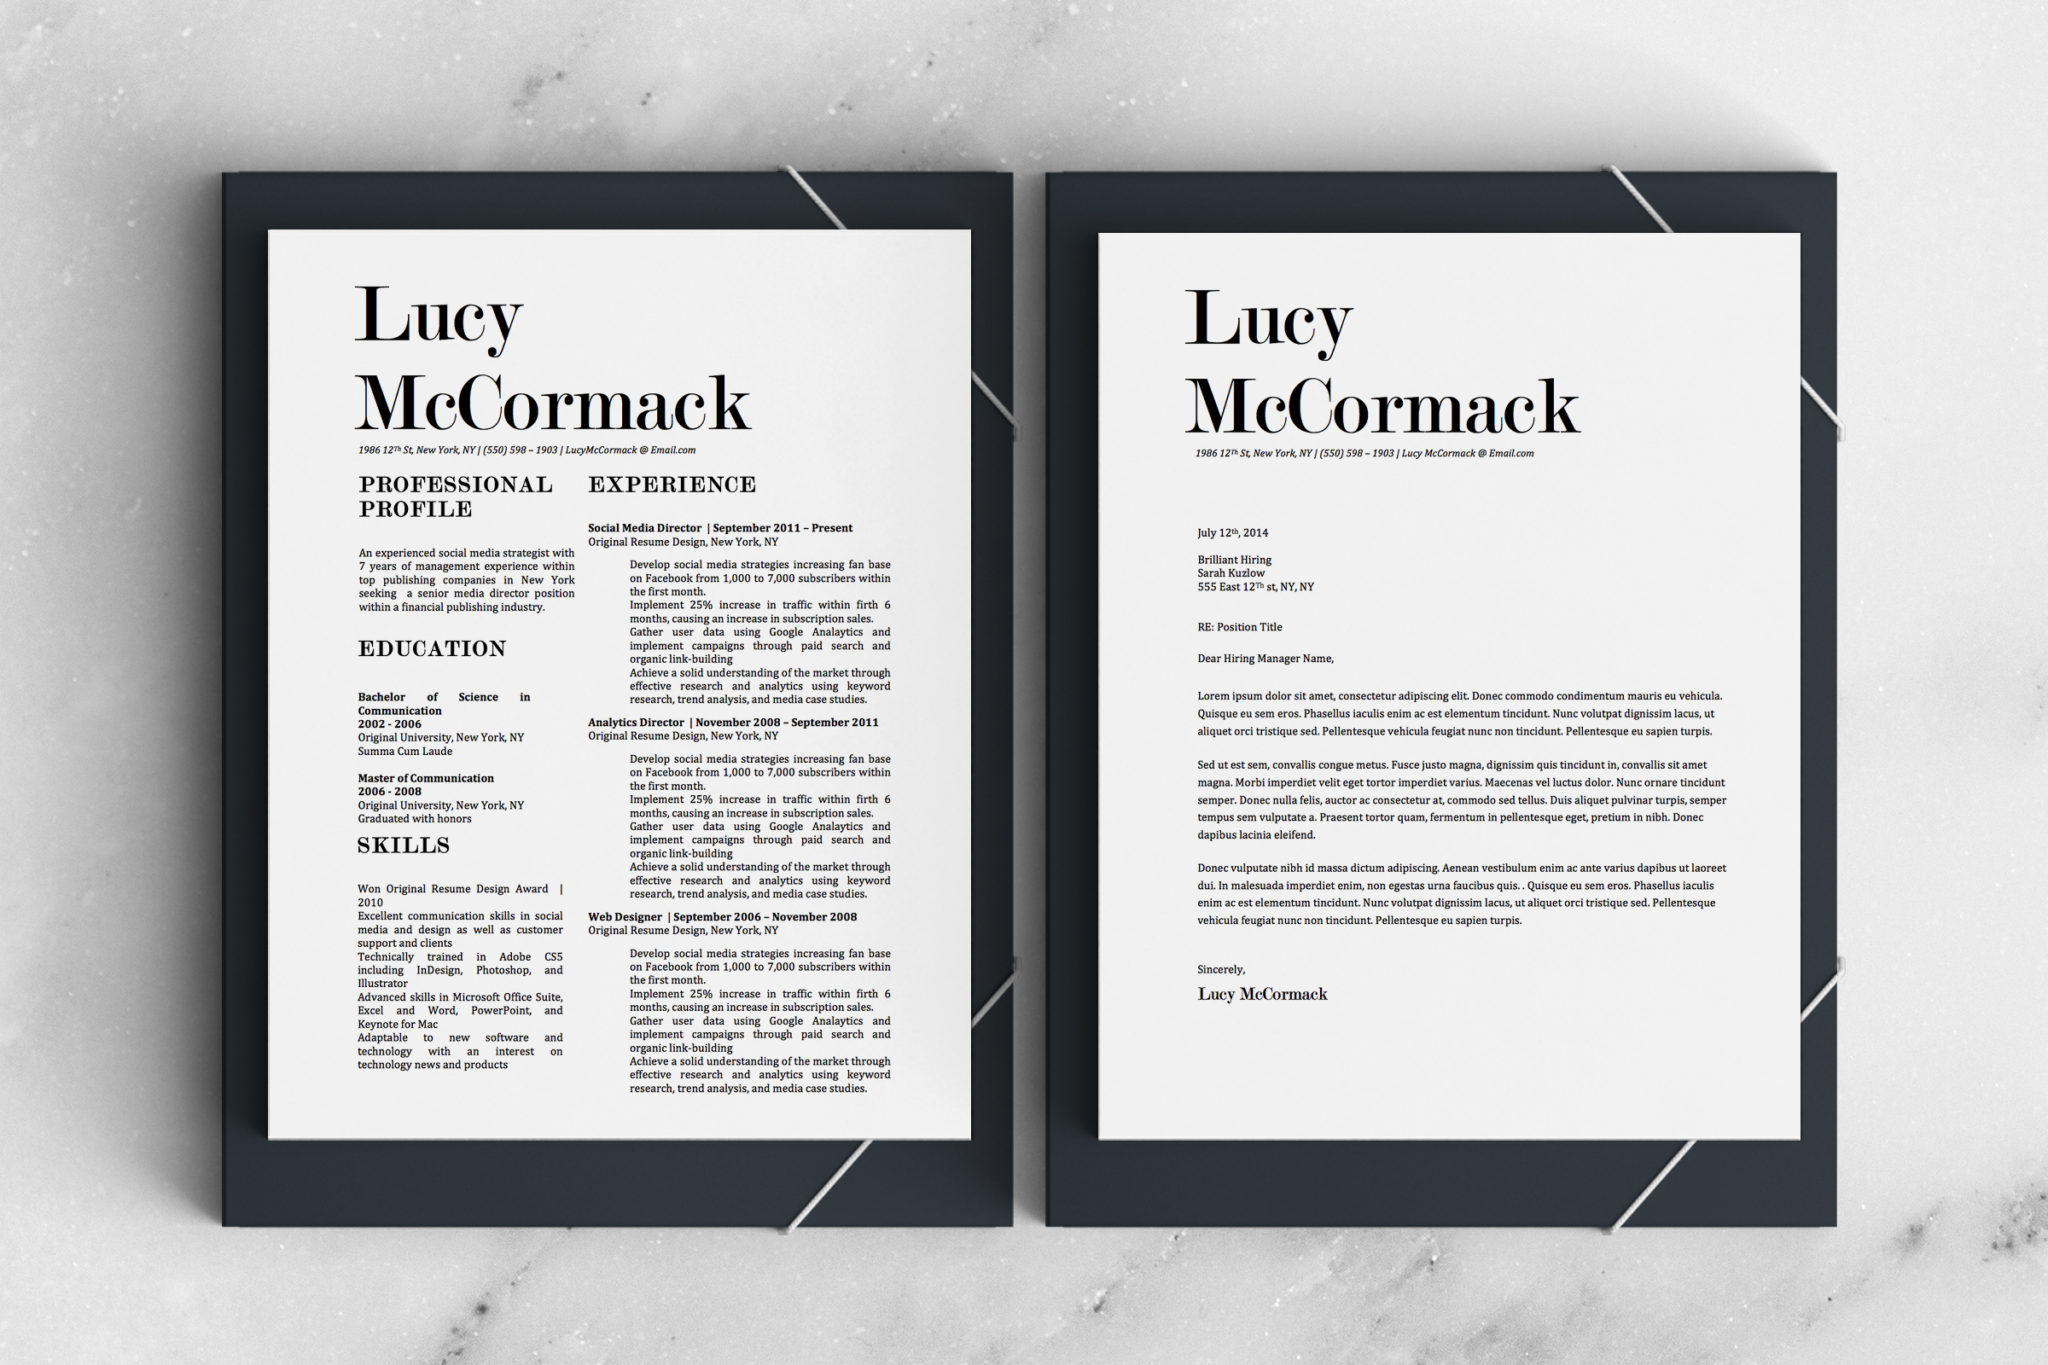 Lucy McCormack Downloadable Resume + Cover Template and Cover Letter Template for Microsoft Word and Apple Pages. This cover letter template is perfect for anyone in the fashion field. The template's design is a modern, unique, colorful, and professional. WE SWEAT THE DETAILS, SO YOU DON'T HAVE TO Stand Out Shop resume templates for Microsoft Word and Apple Pages will help you design a modern and professional resume in minutes! Simply download, open in Microsoft Word or Apple Pages, and input your resume's information. Increase your chances of landing your dream job with a job winning, modern, simple, and scannable resume template for Microsoft Word and Apple Pages. Creating a resume shouldn't suck Simply download a resume template from Stand Out Shop, enter your information in Microsoft Word or Apple Pages and get a beautifully formatted resume in seconds. Create a unique and vivid resume in minutes. Make an impressive resume. Customize your own layout in Microsoft Word or Apple Pages and introduce yourself in an impressive way. You can download your resume at any time. Stand out from other job seekers with a beautiful professional design.